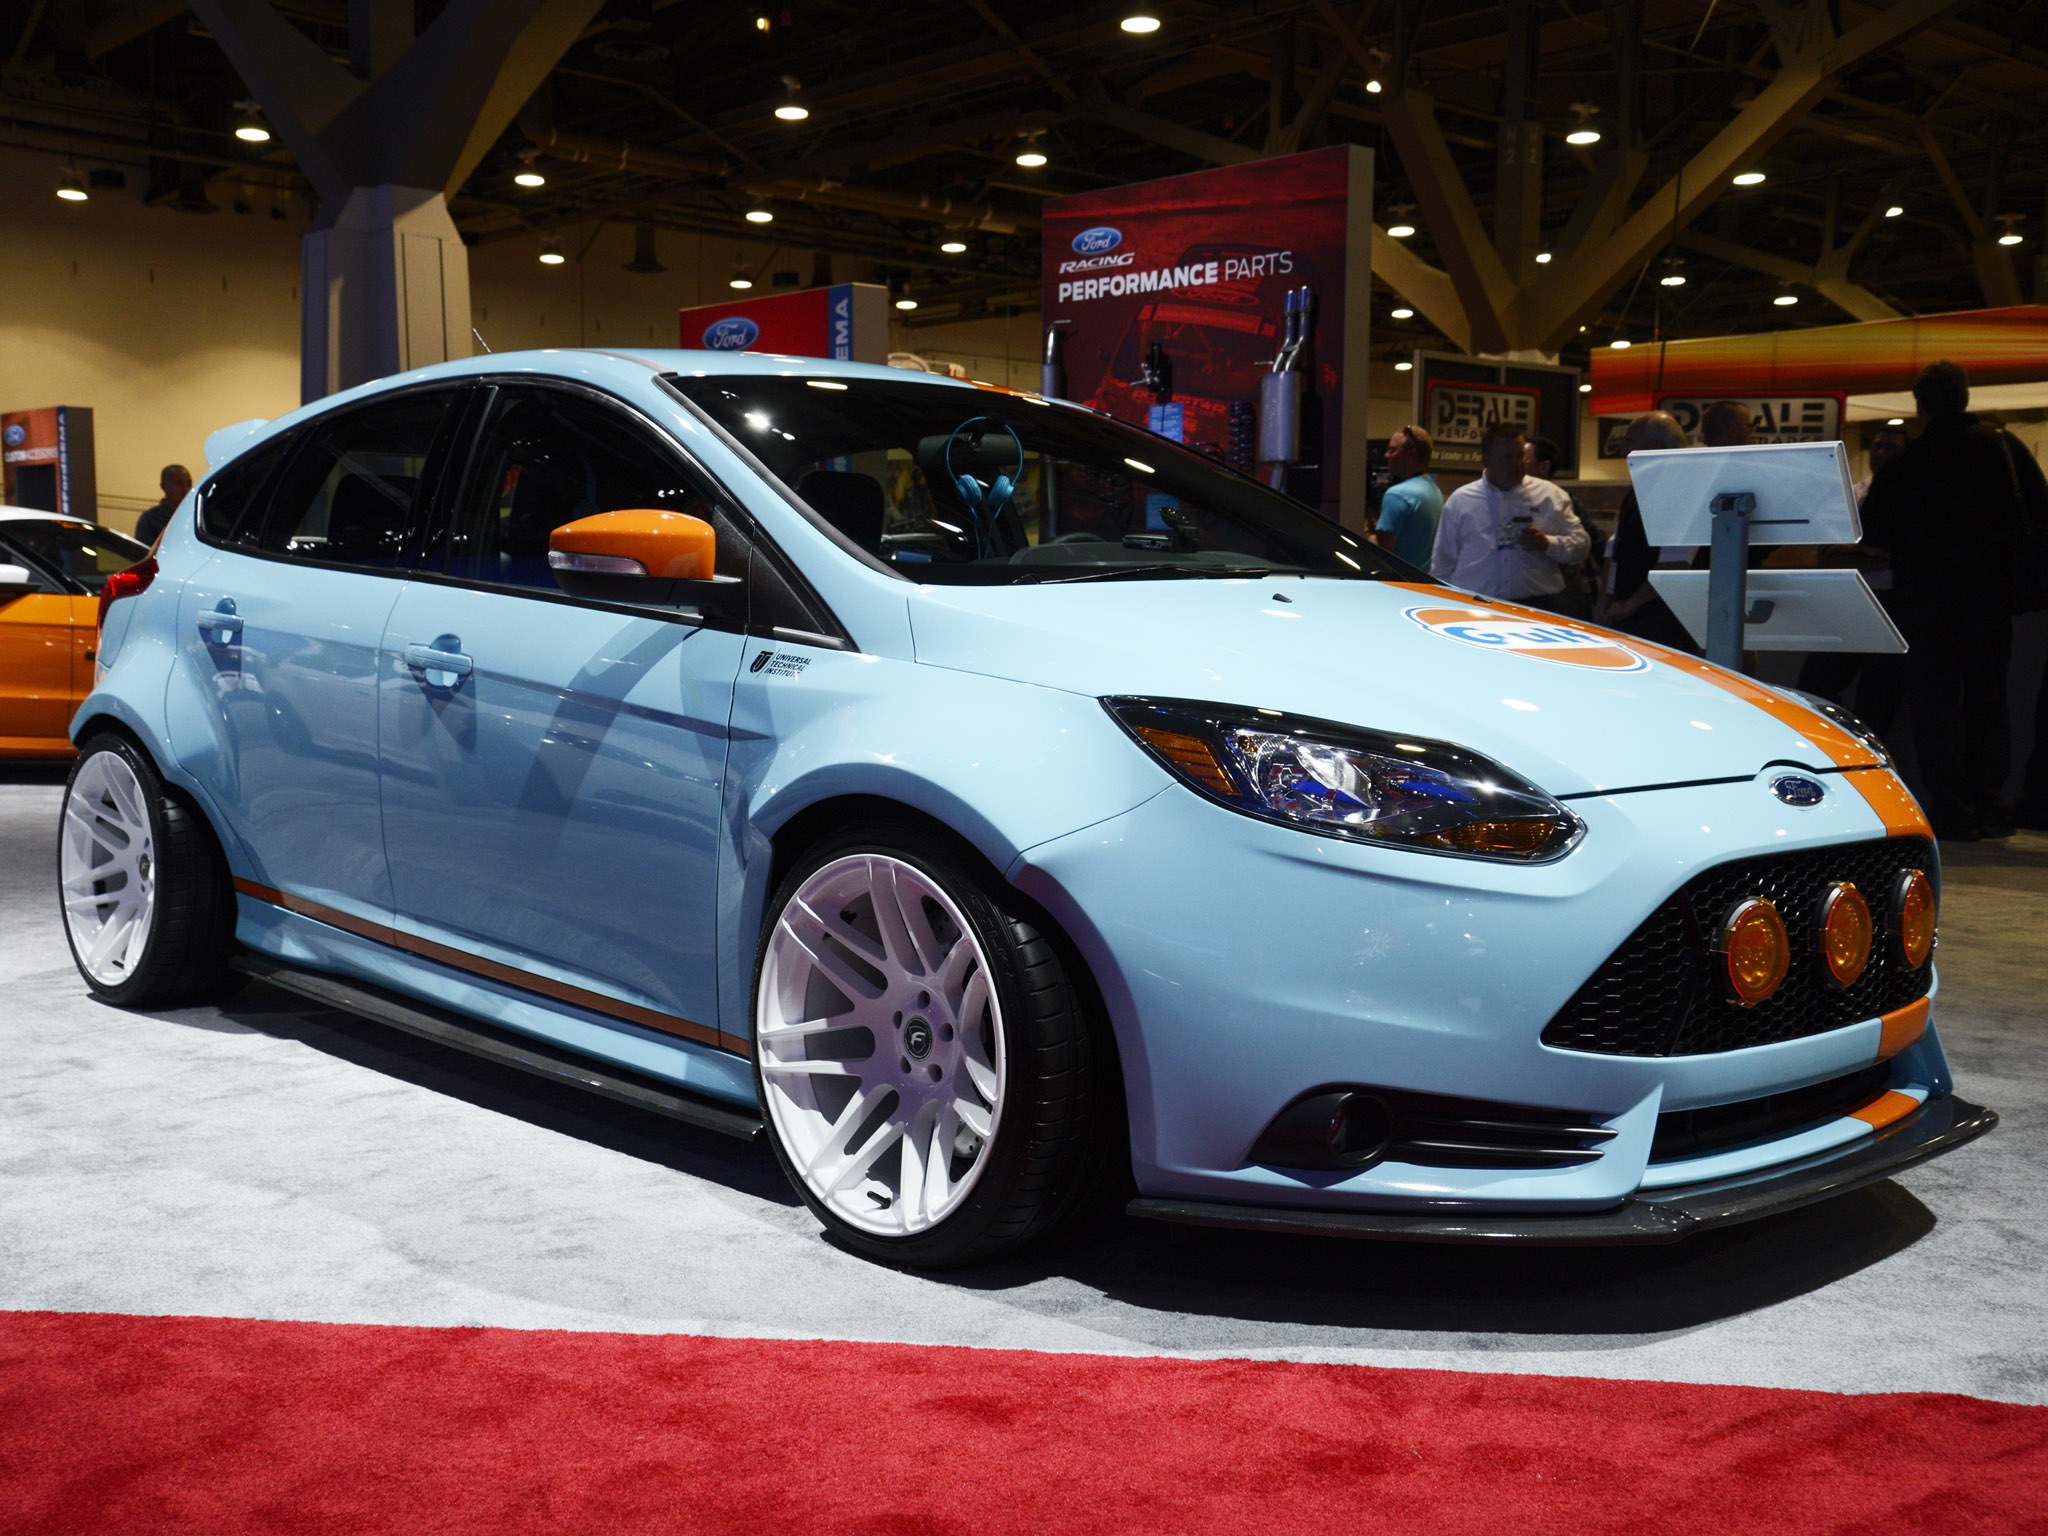 2013 ford focus st gulf racing race tuning s t g wallpaper 2048x1536 170896 wallpaperup. Black Bedroom Furniture Sets. Home Design Ideas